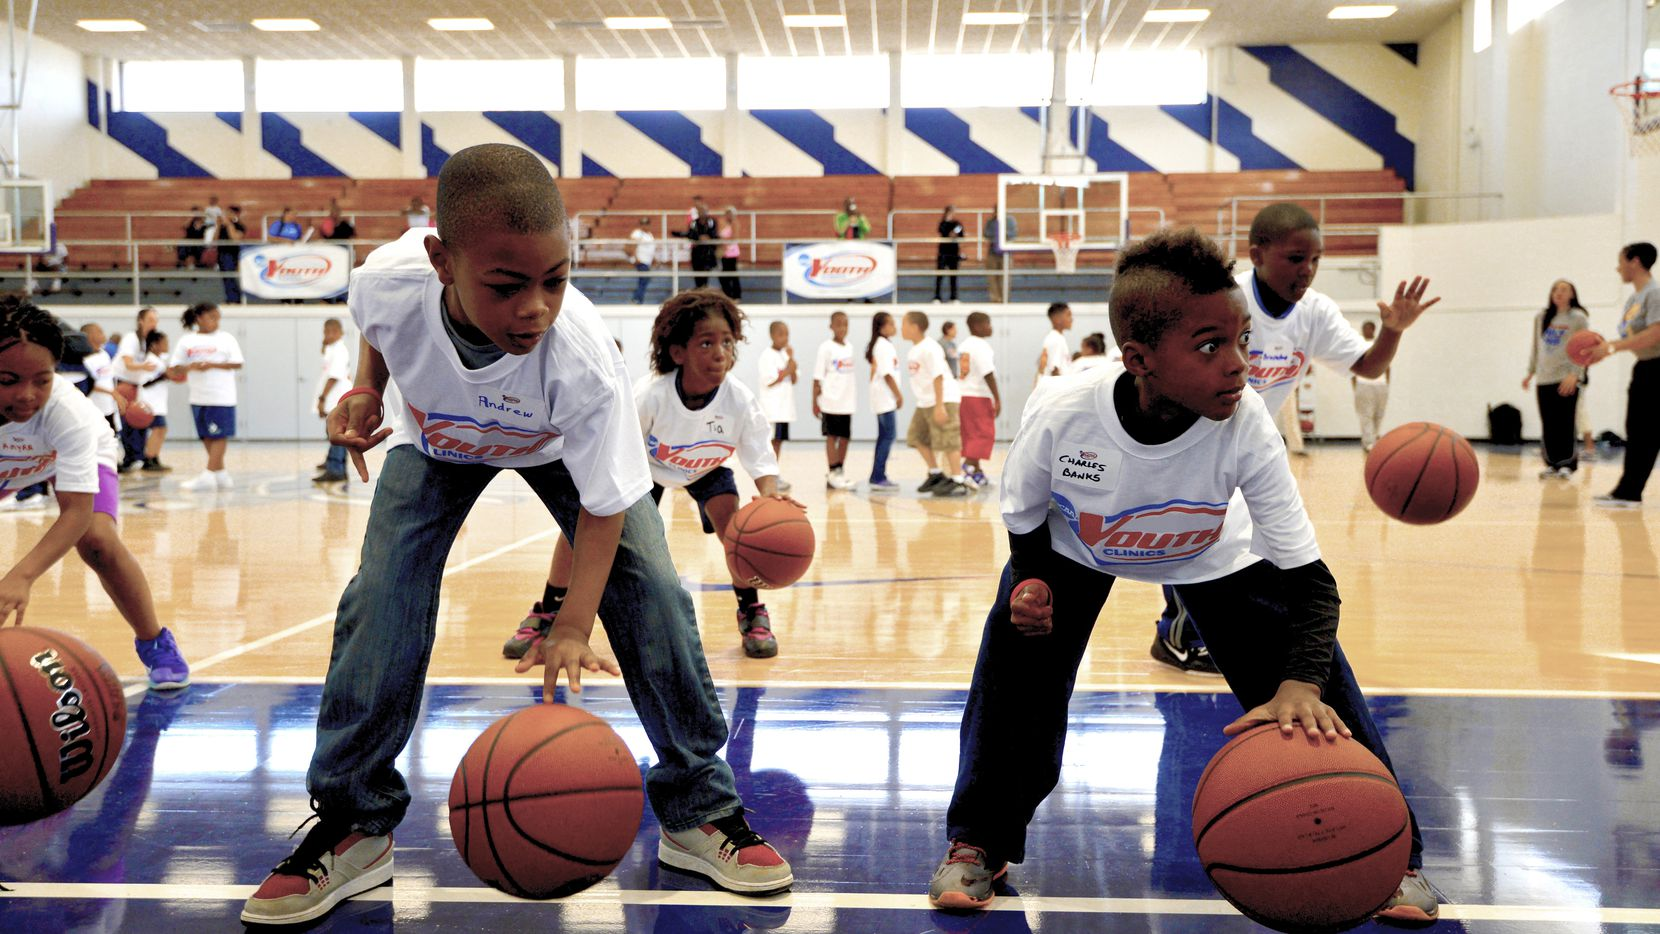 Kids can participate in a youth basketball clinic at Tourney Town in Dallas on April 1.